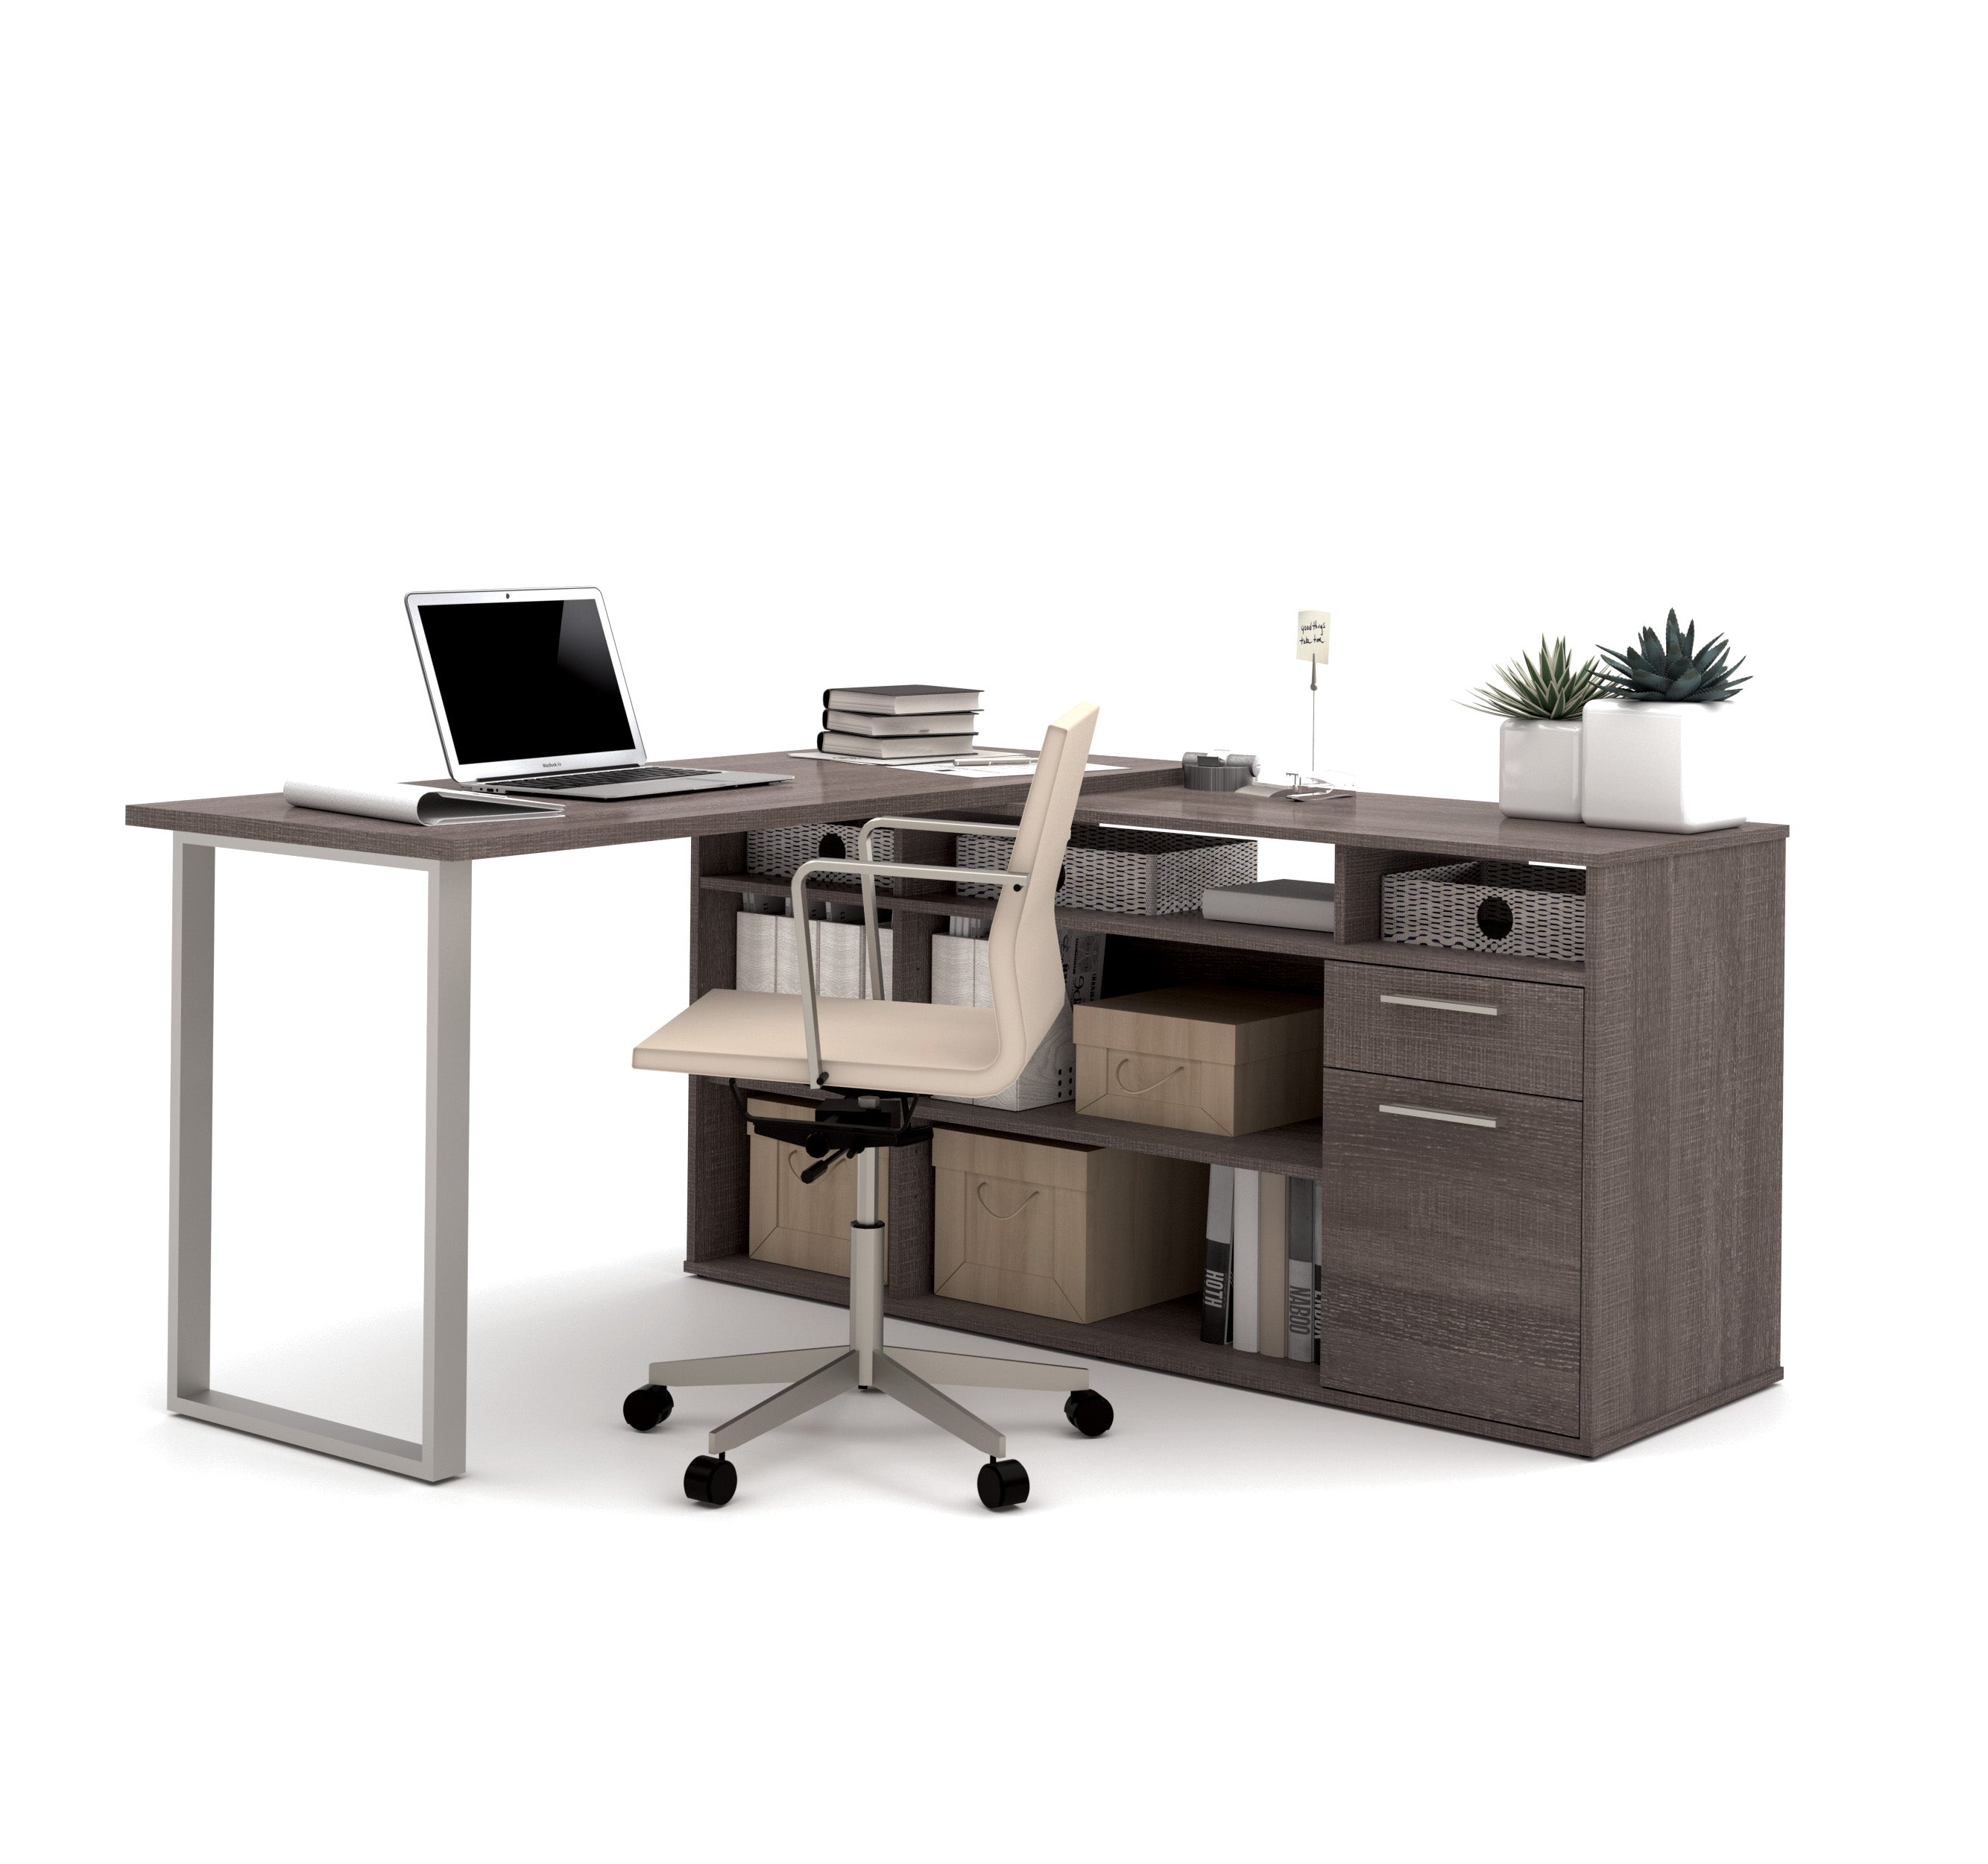 desk view l desks img standing shape shaped height s shop available office adjustable arnold